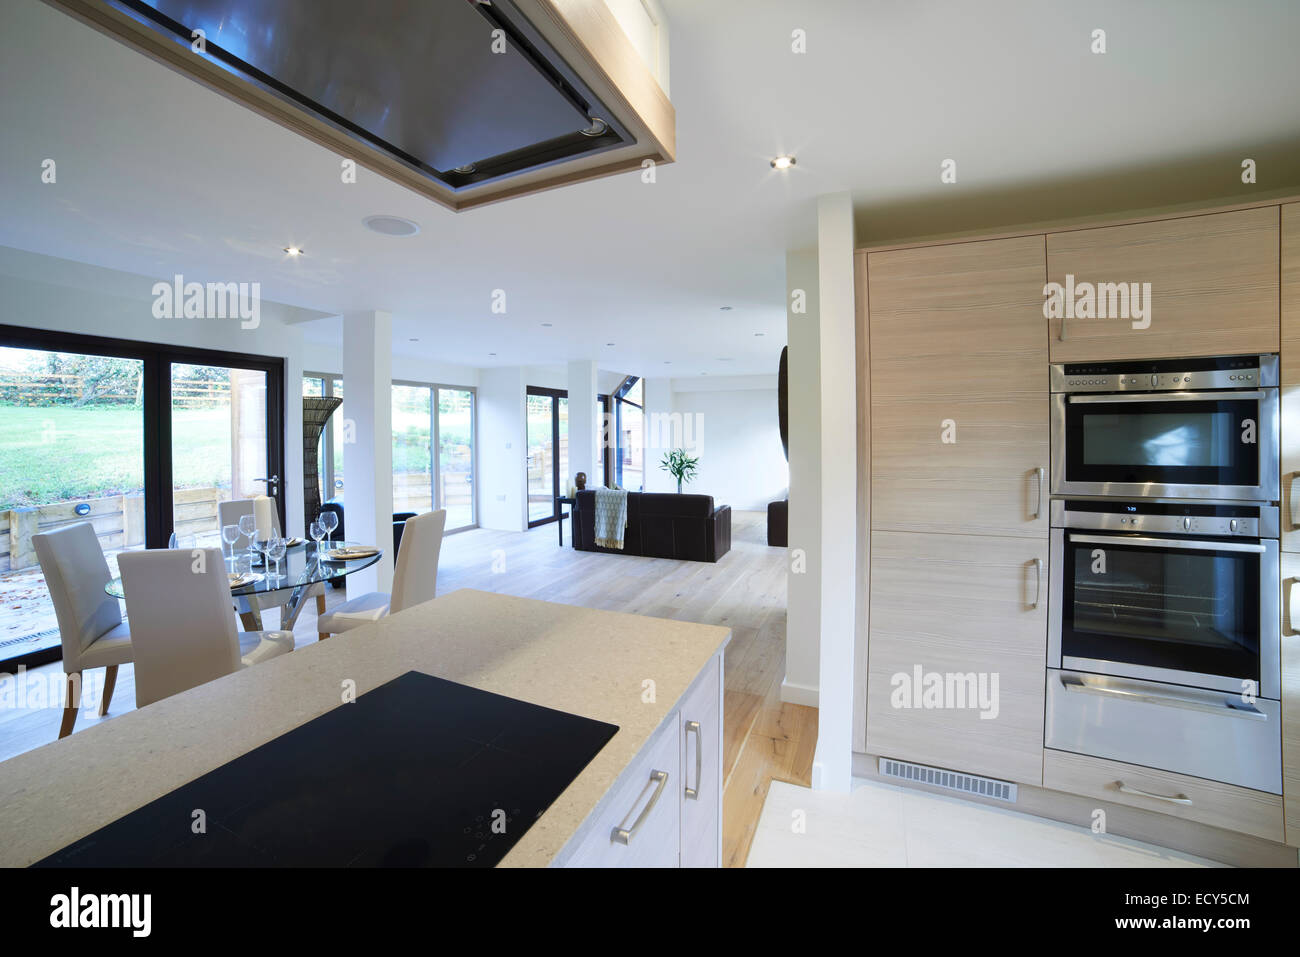 Interior View Of Beautiful Luxury Dining Room And Kitchen - Stock Image